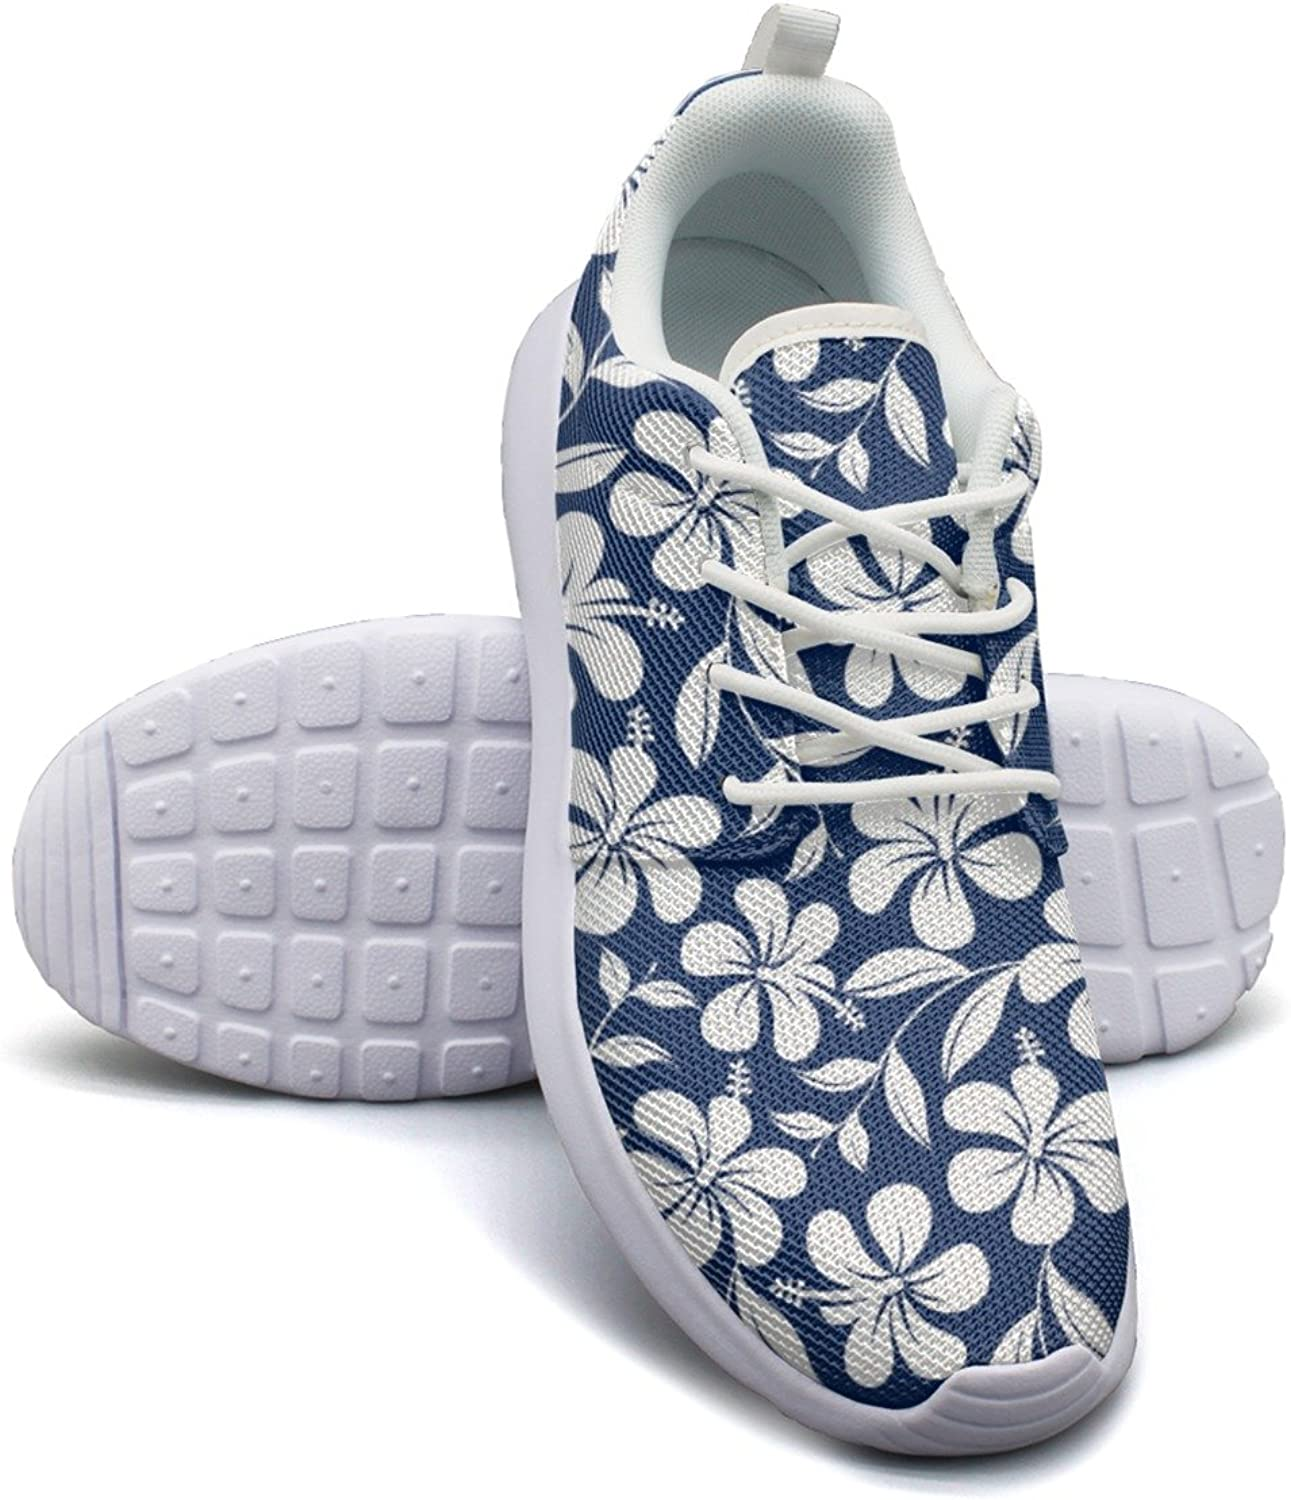 bluee And White Tropical Hibiscus Flowers Women's Fashion Tennis shoes Retro Mesh Lightweight Athletic Sneakers